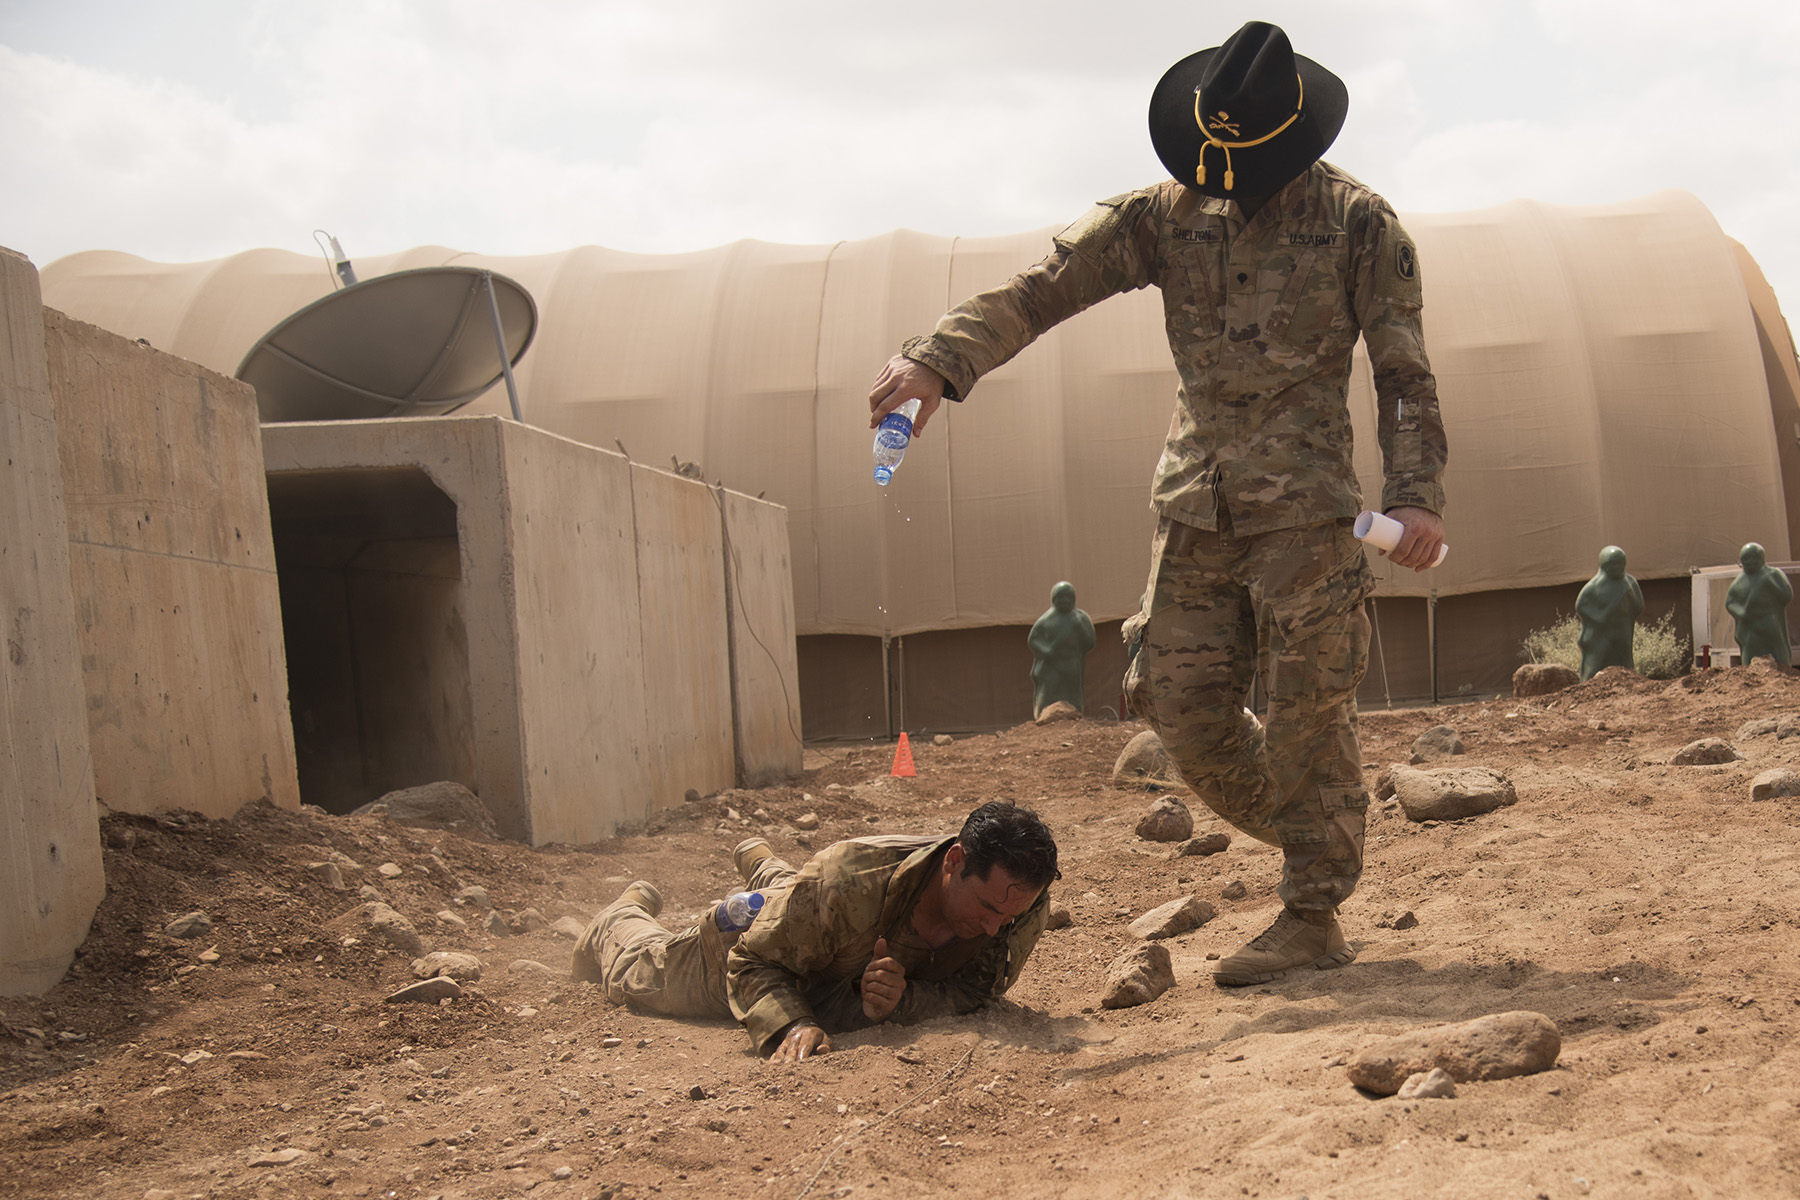 DJIBOUTI- U.S. Army Spc. Joe Shelton, pours water on Sgt. 1st Class Samuel Amador, 1st Battalion, 124th Infantry Regiment, while he hides a wire after securing a mock claymore mine during a spur ride event, Oct. 21, 2016, at a nearby airfield in Djibouti. Twenty-eight U.S. Army Soldiers and one Air Force Airman participated in the traditional Army event where they completed 10 tasks with various stress events before each task in approximately 19 hours. (U.S. Air Force photo by Staff Sgt. Tiffany DeNault)